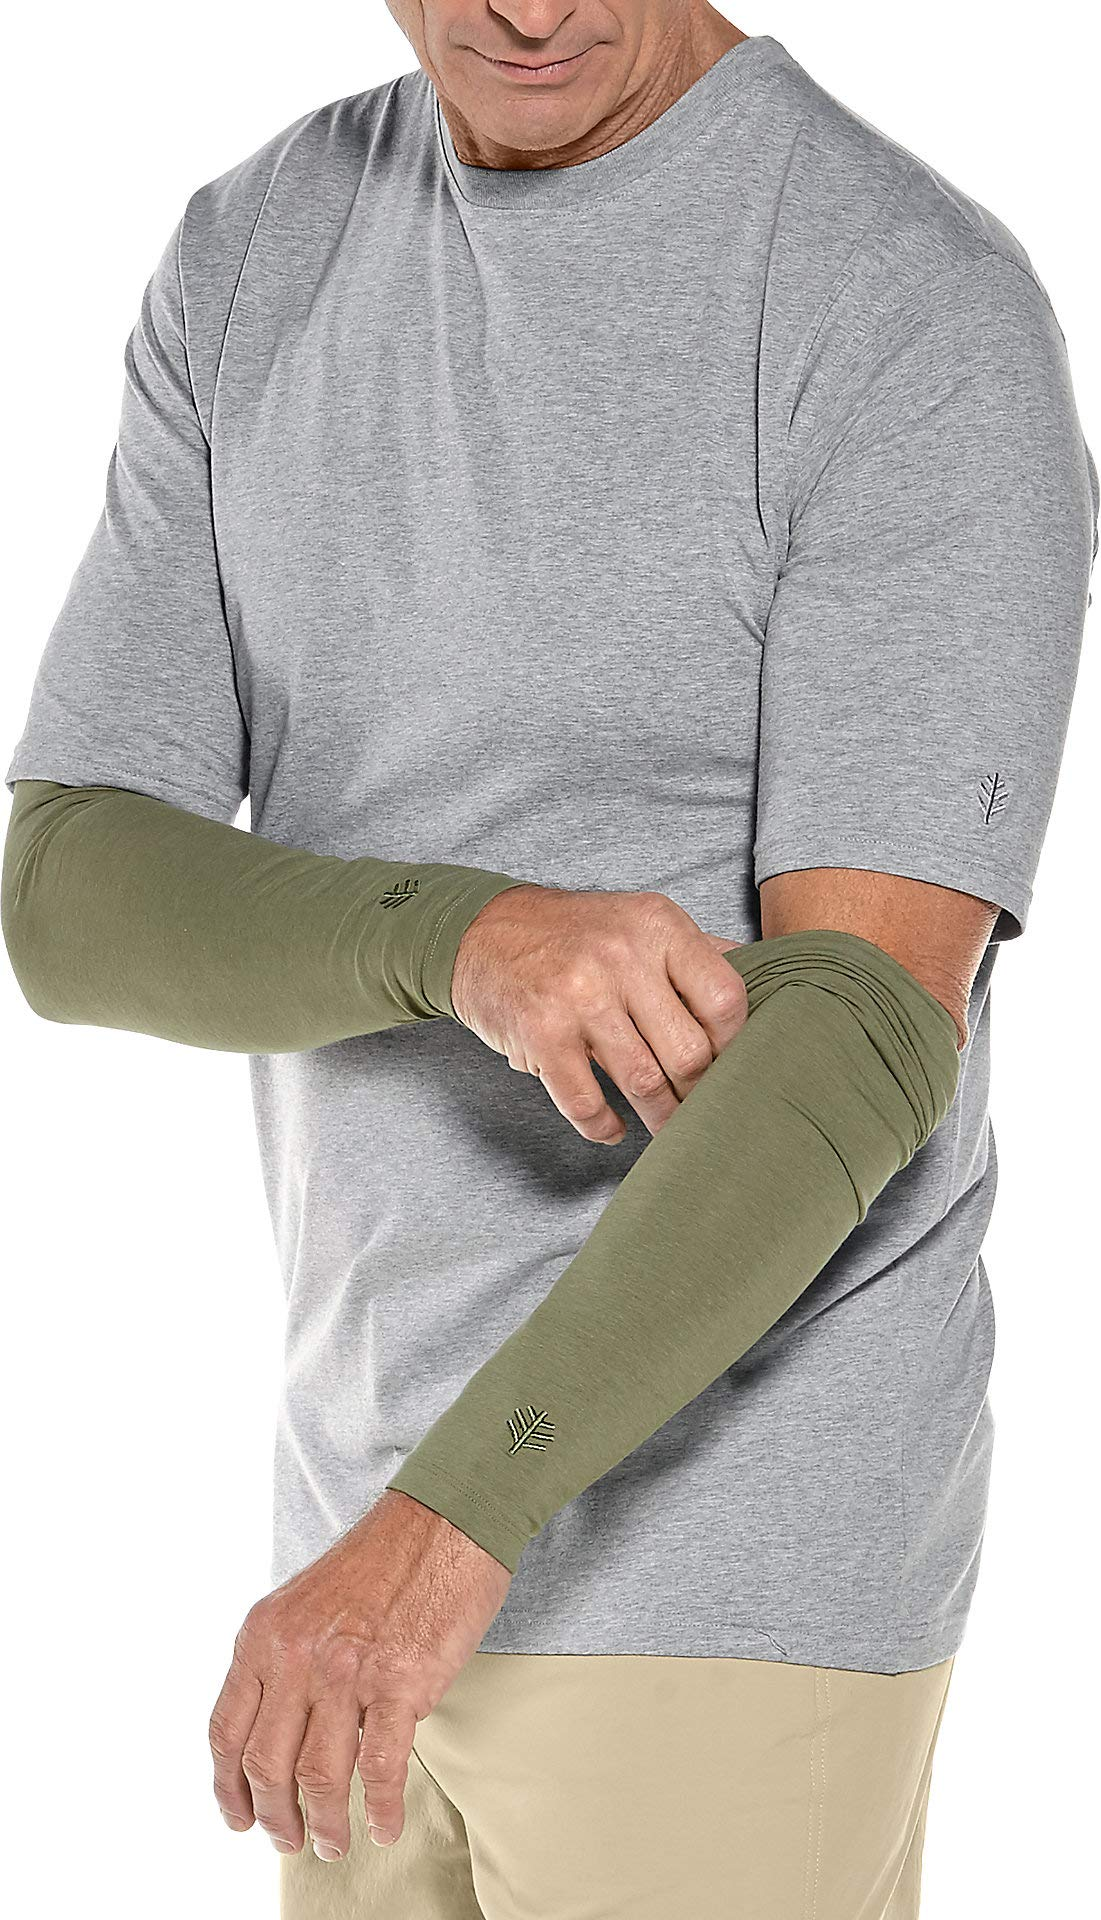 Coolibar UPF 50+ Men's Sun Sleeves - Sun Protective (Large/X-Large- Olive)